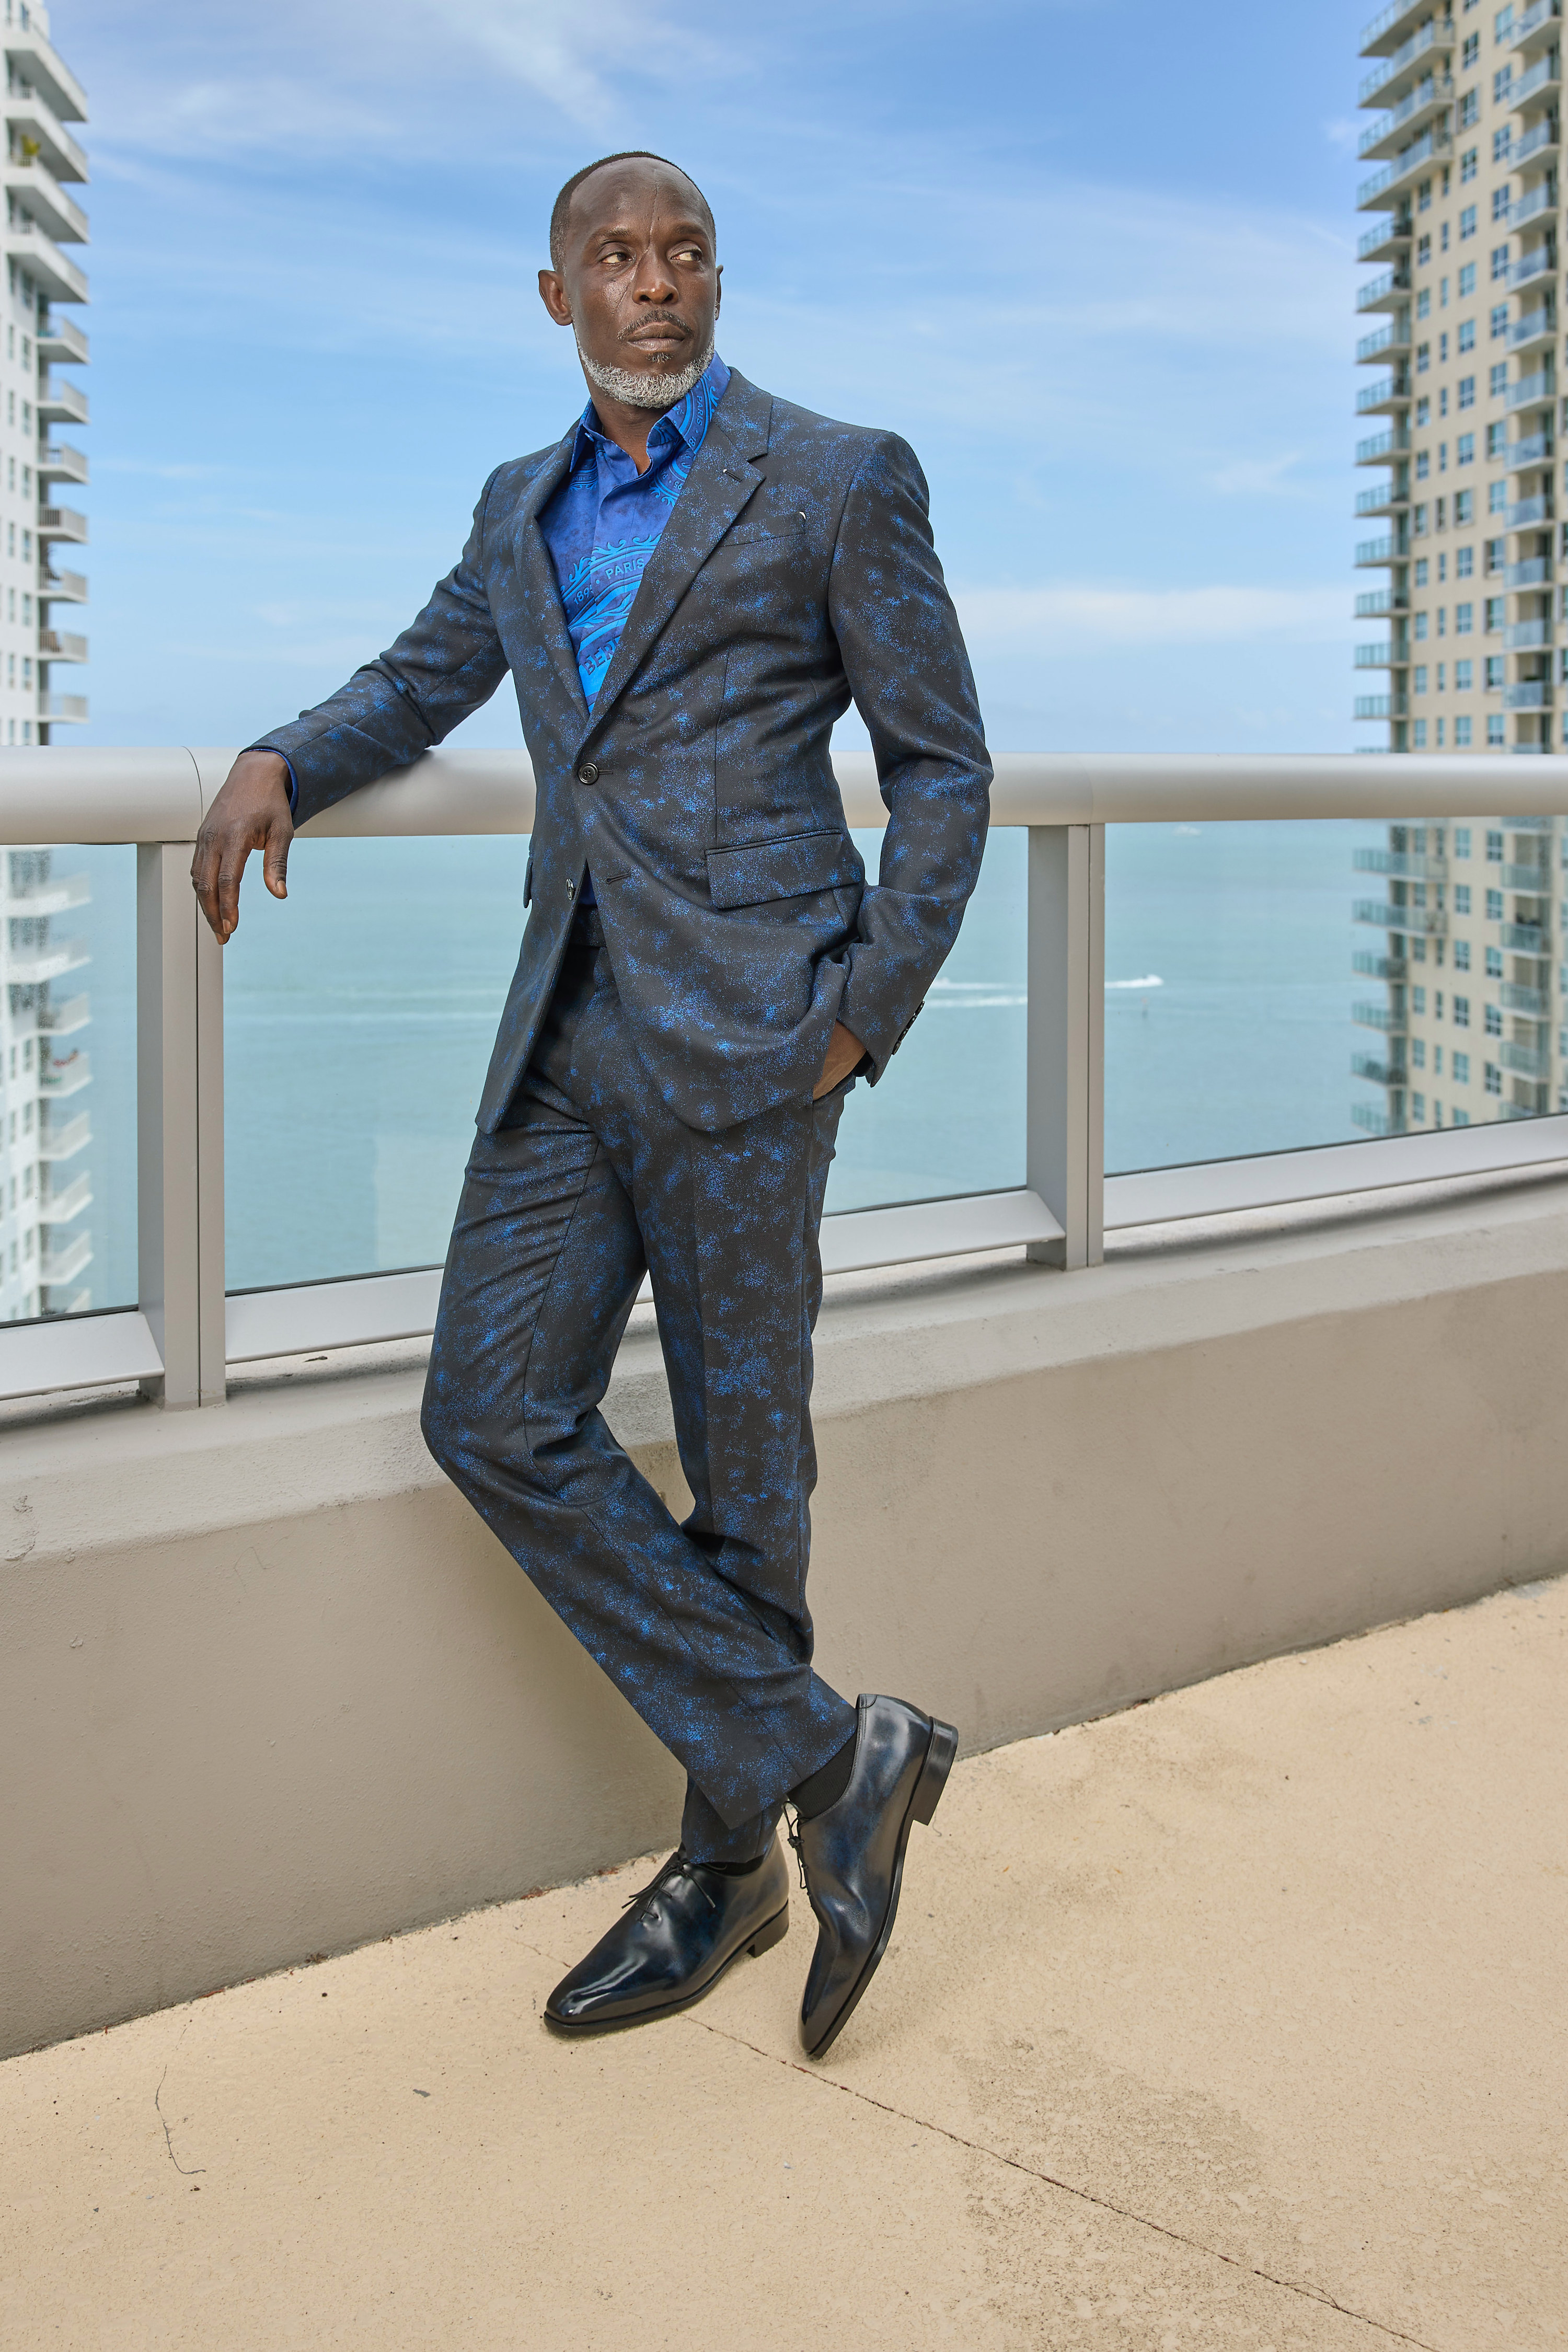 Michael wears a suit as he leans against a railing for a photo